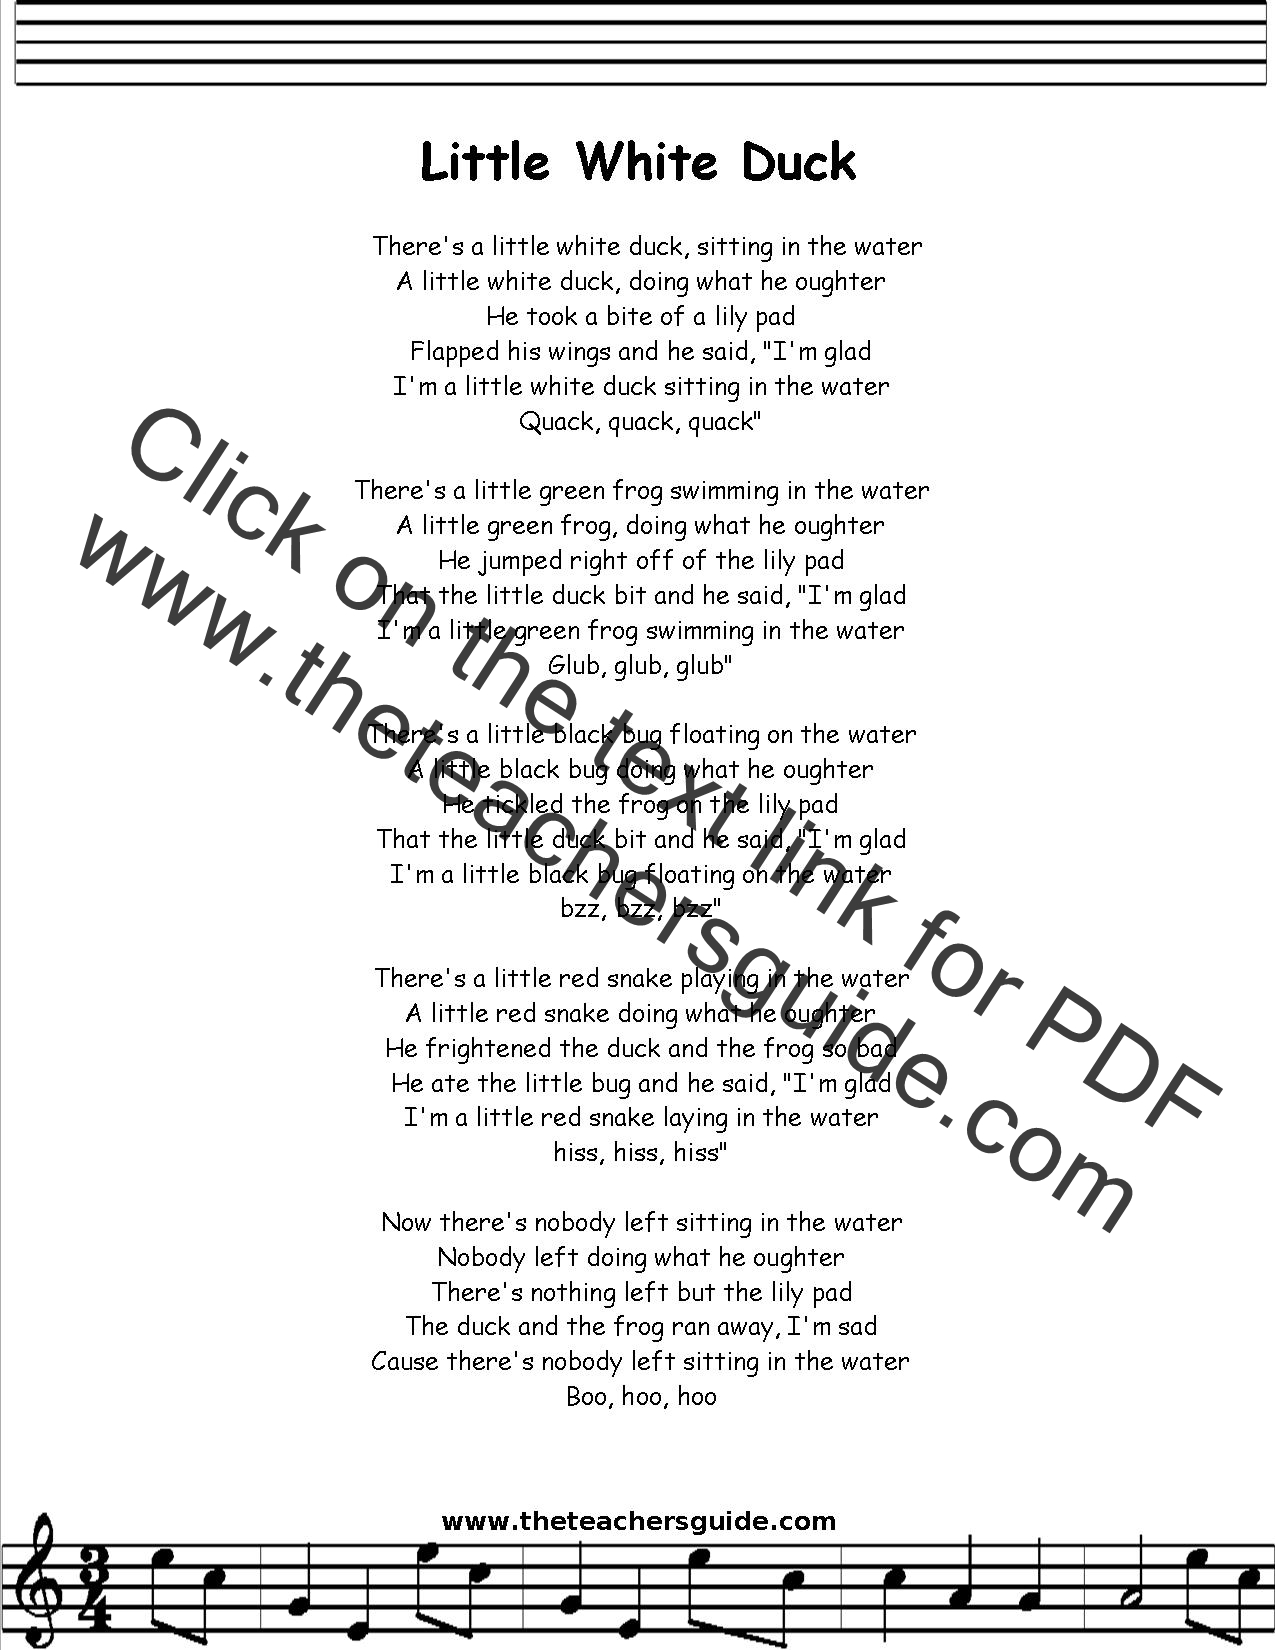 Little White Duck Lyrics Printout Midi And Video